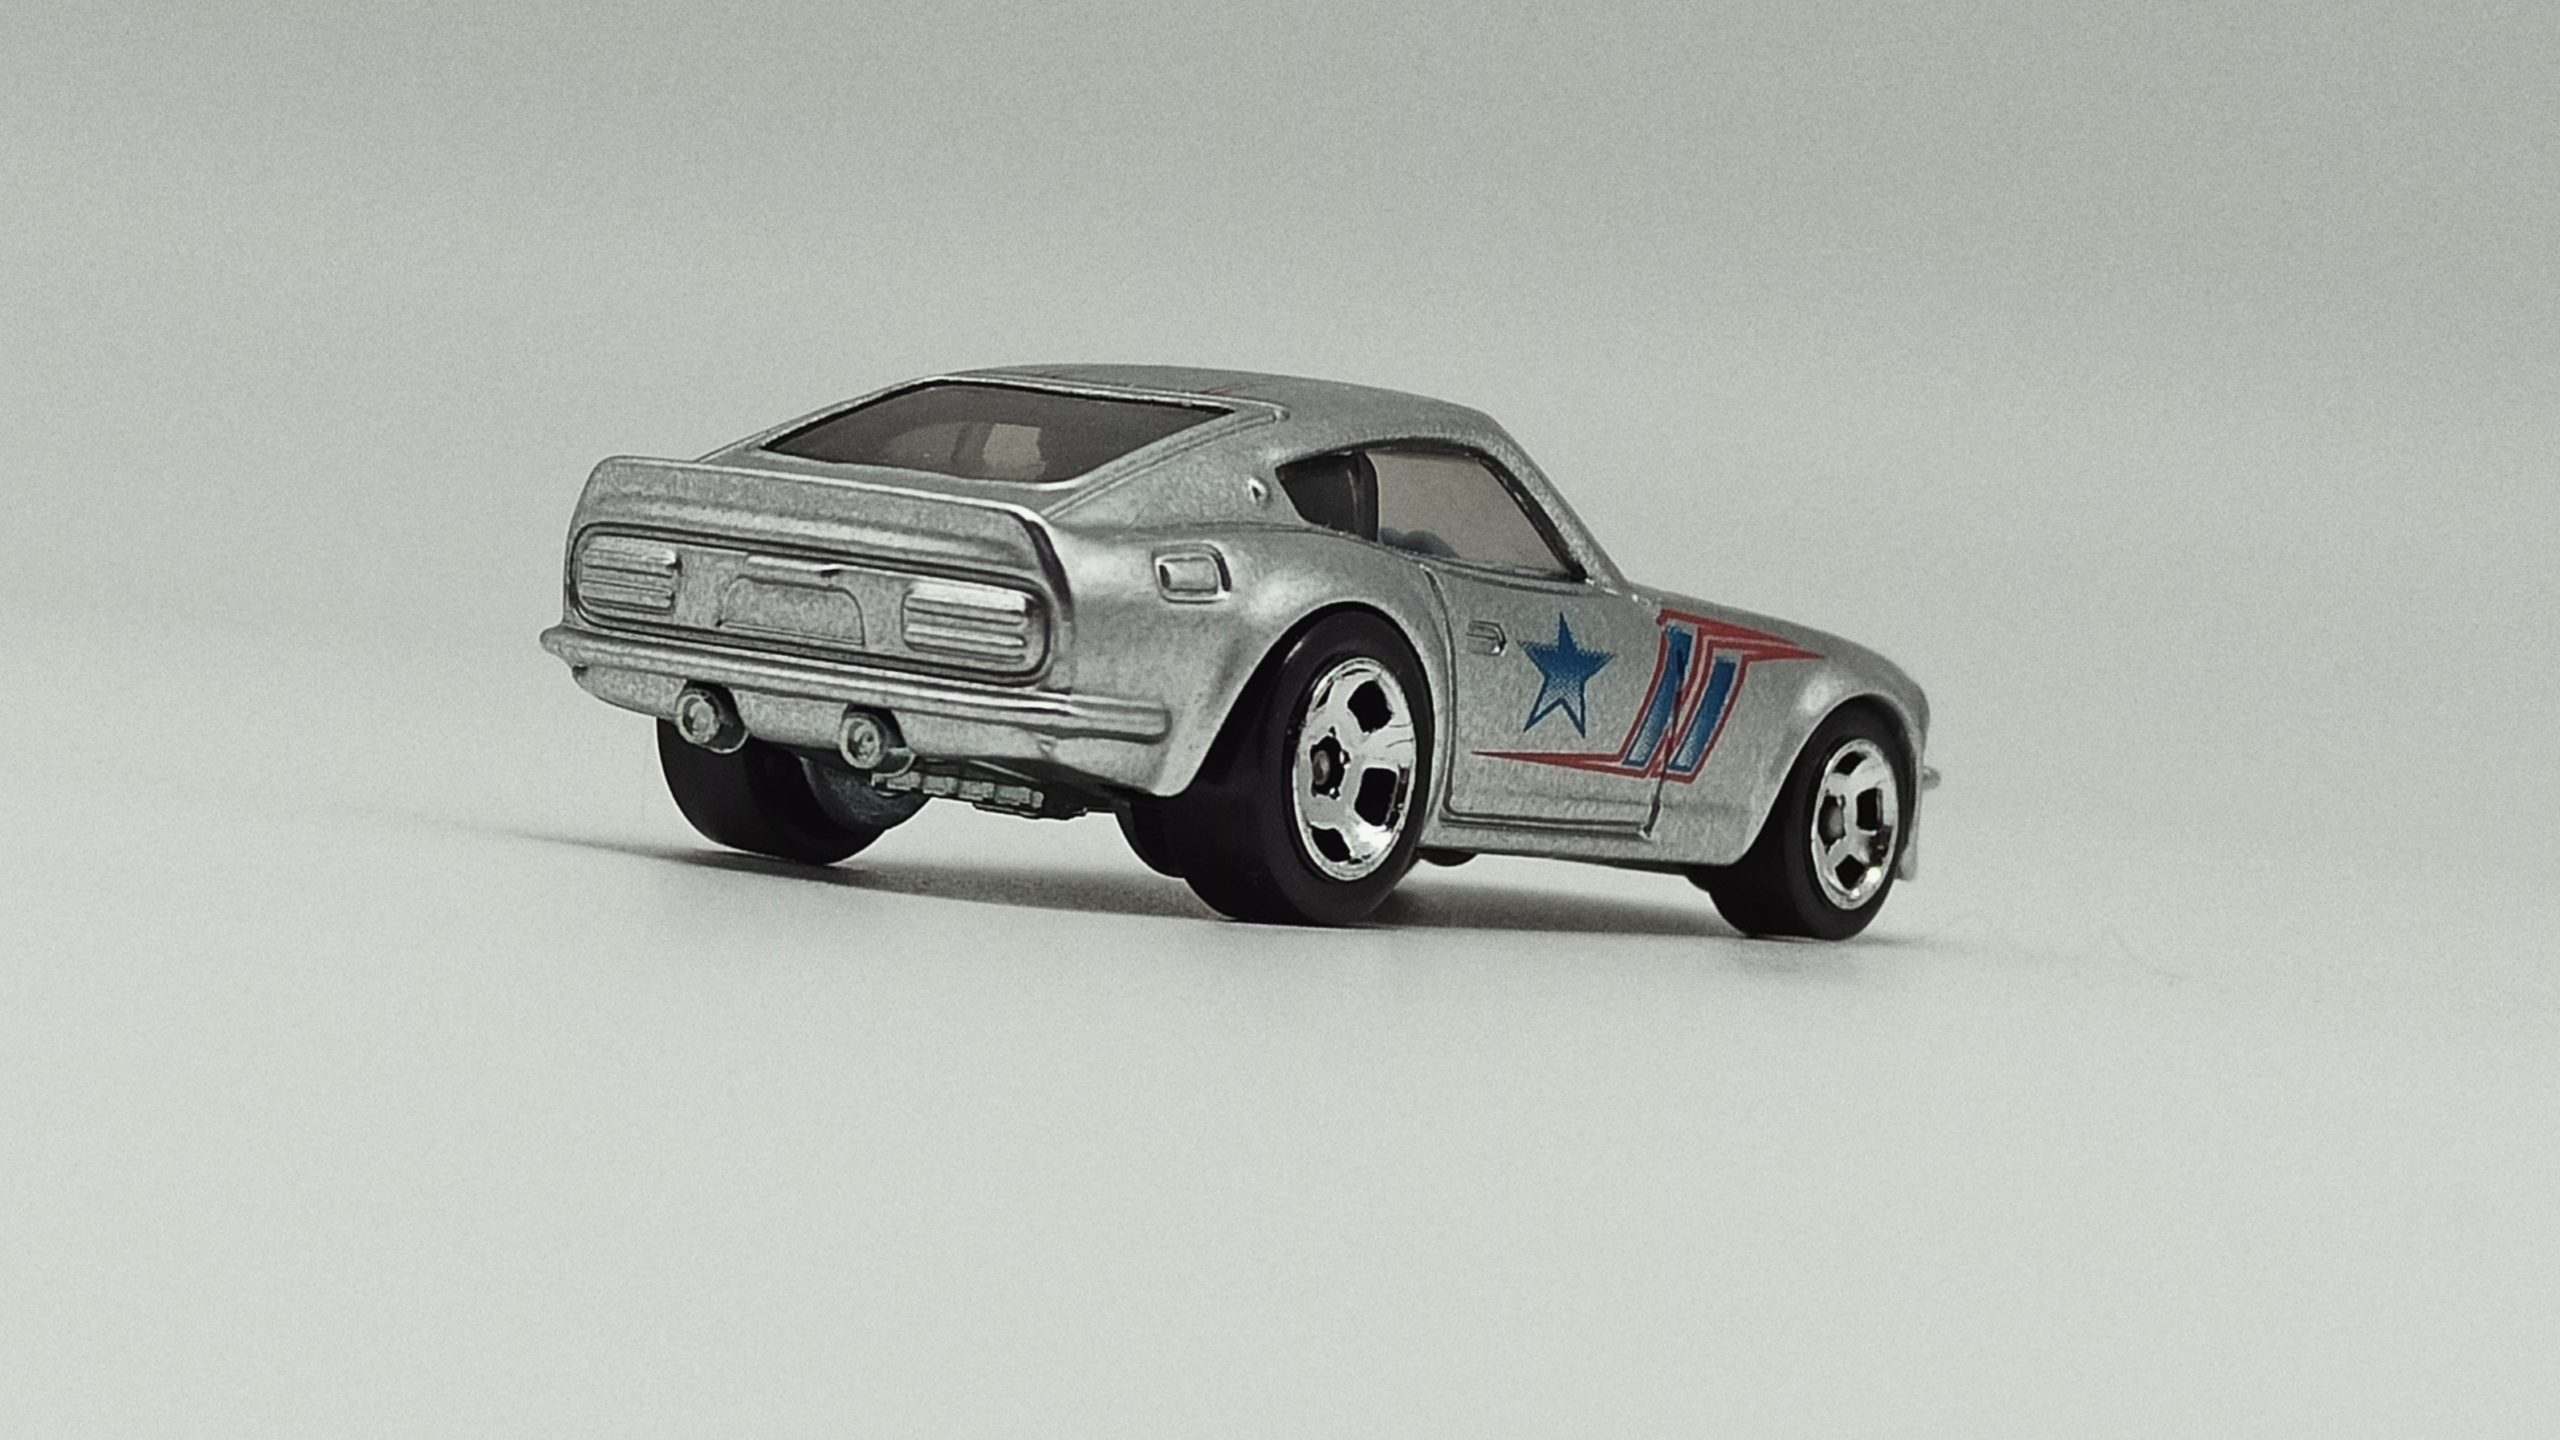 Hot Wheels Datsun 240Z (BDR47) 2014 Cool Classics Series 2 (26/30) spectrafrost silver back angle